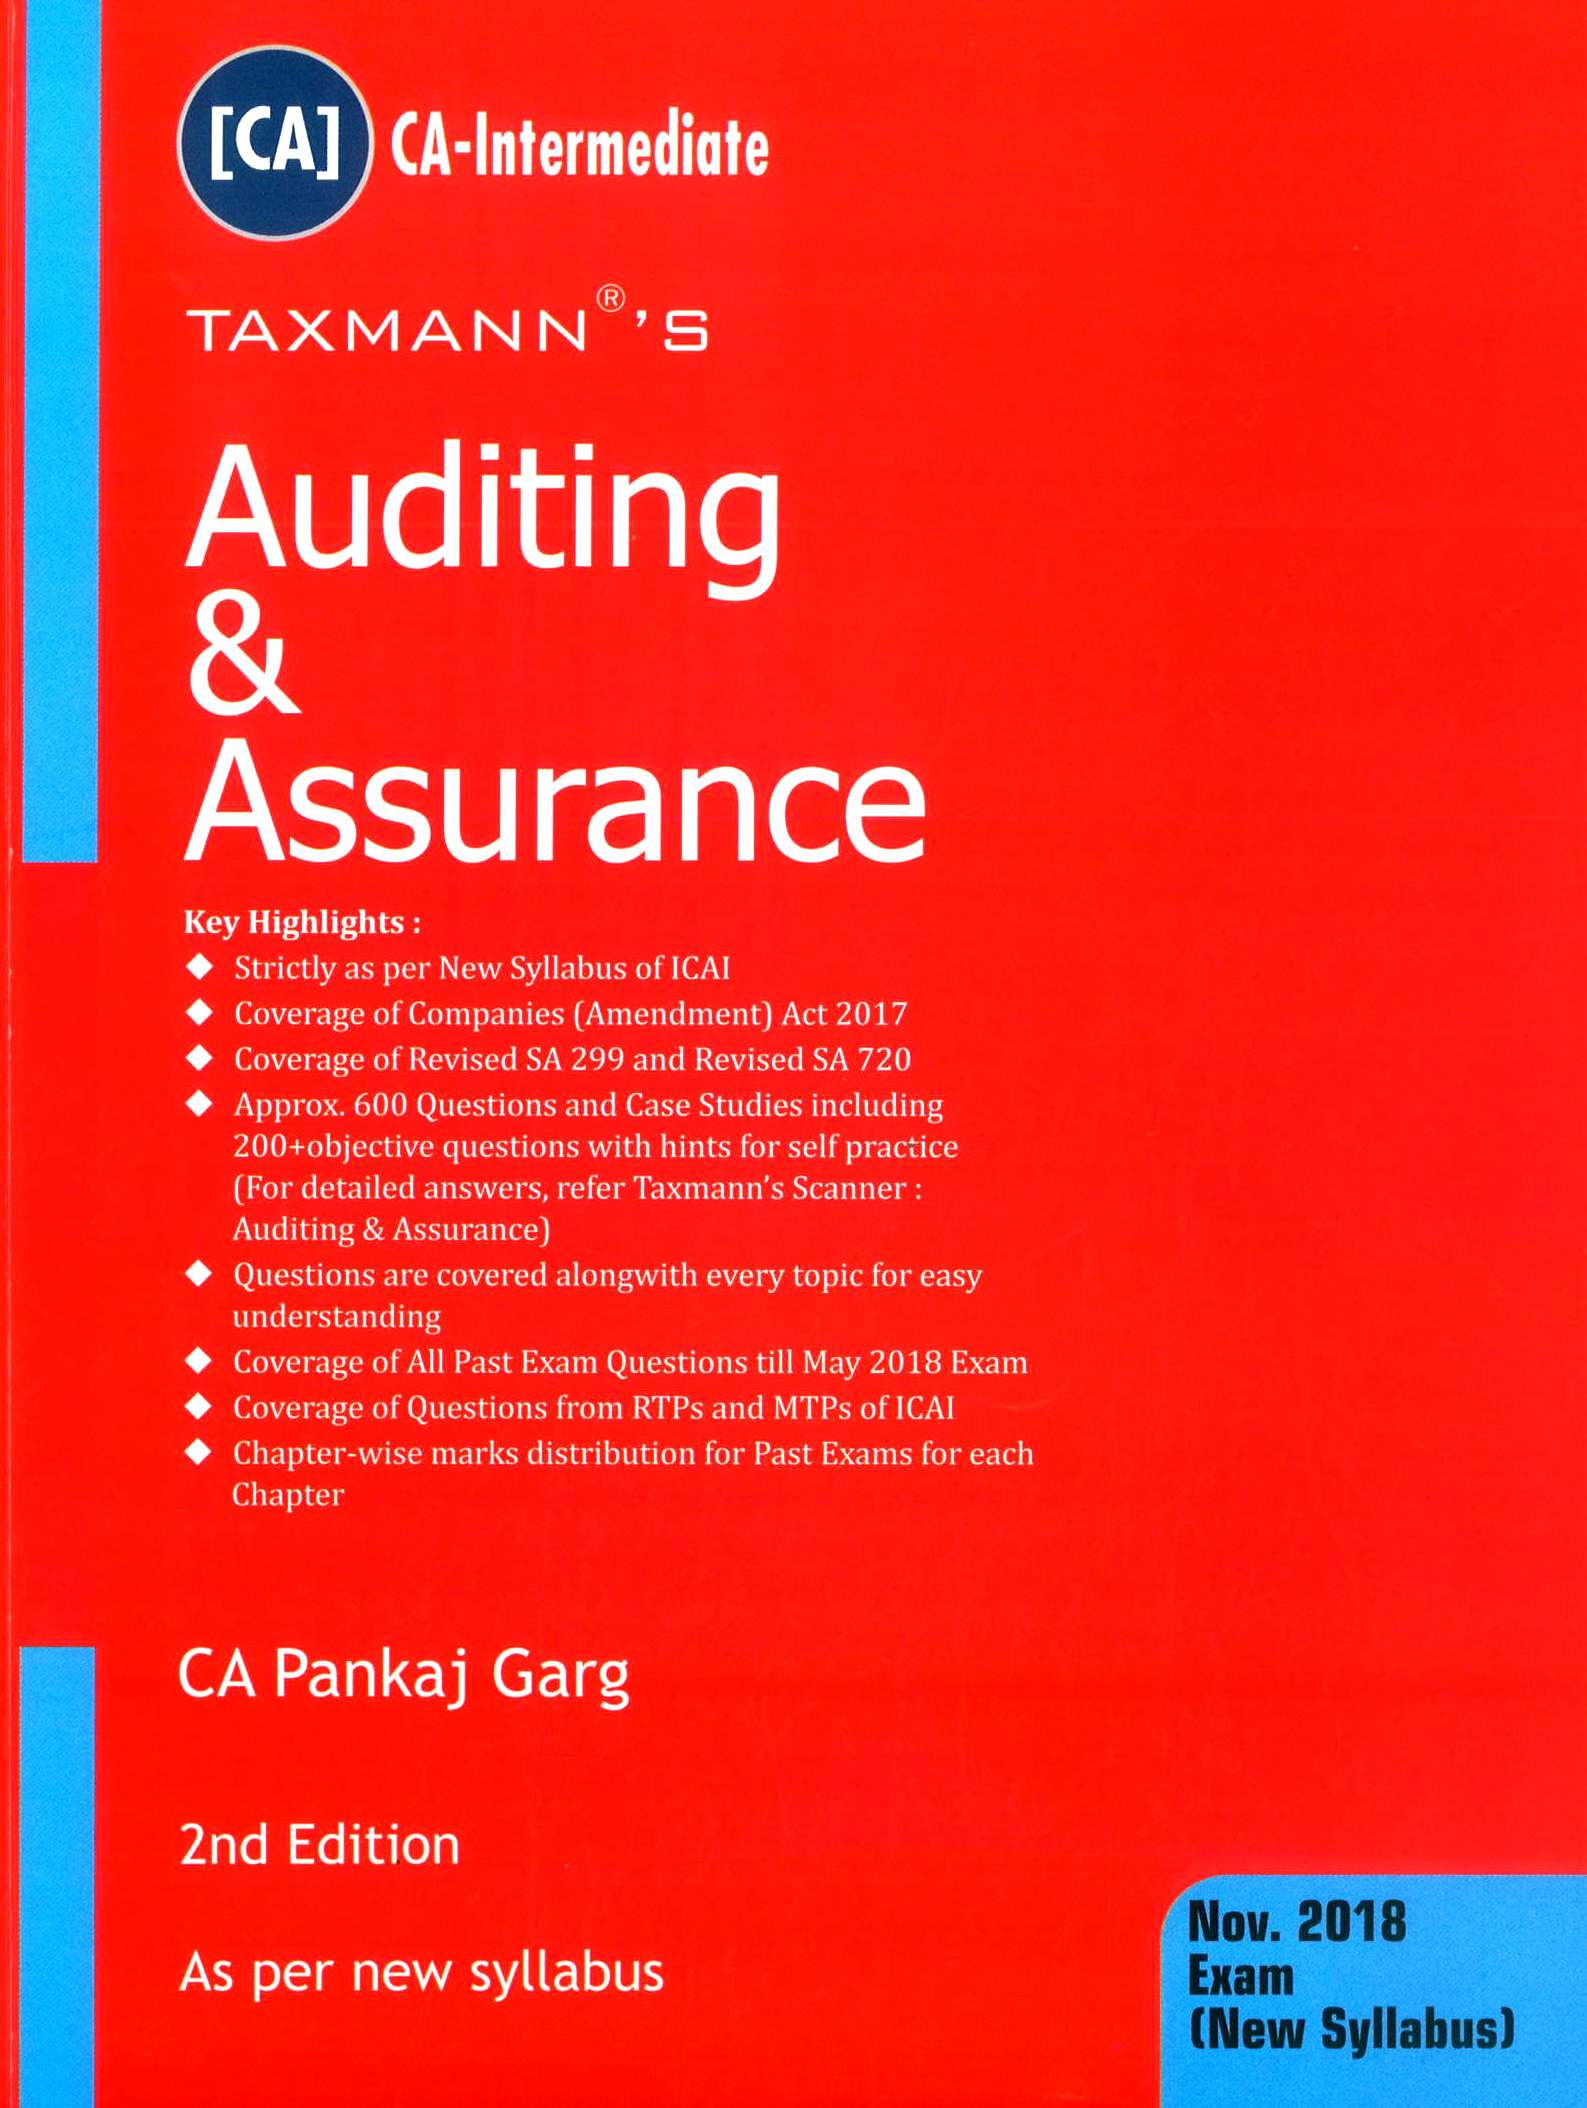 Taxmann's Auditing & Assurance by CA Pankaj Garg (As per new syllabus) Nov 2018 Exams (New Syllabus) 2nd Edition 2018